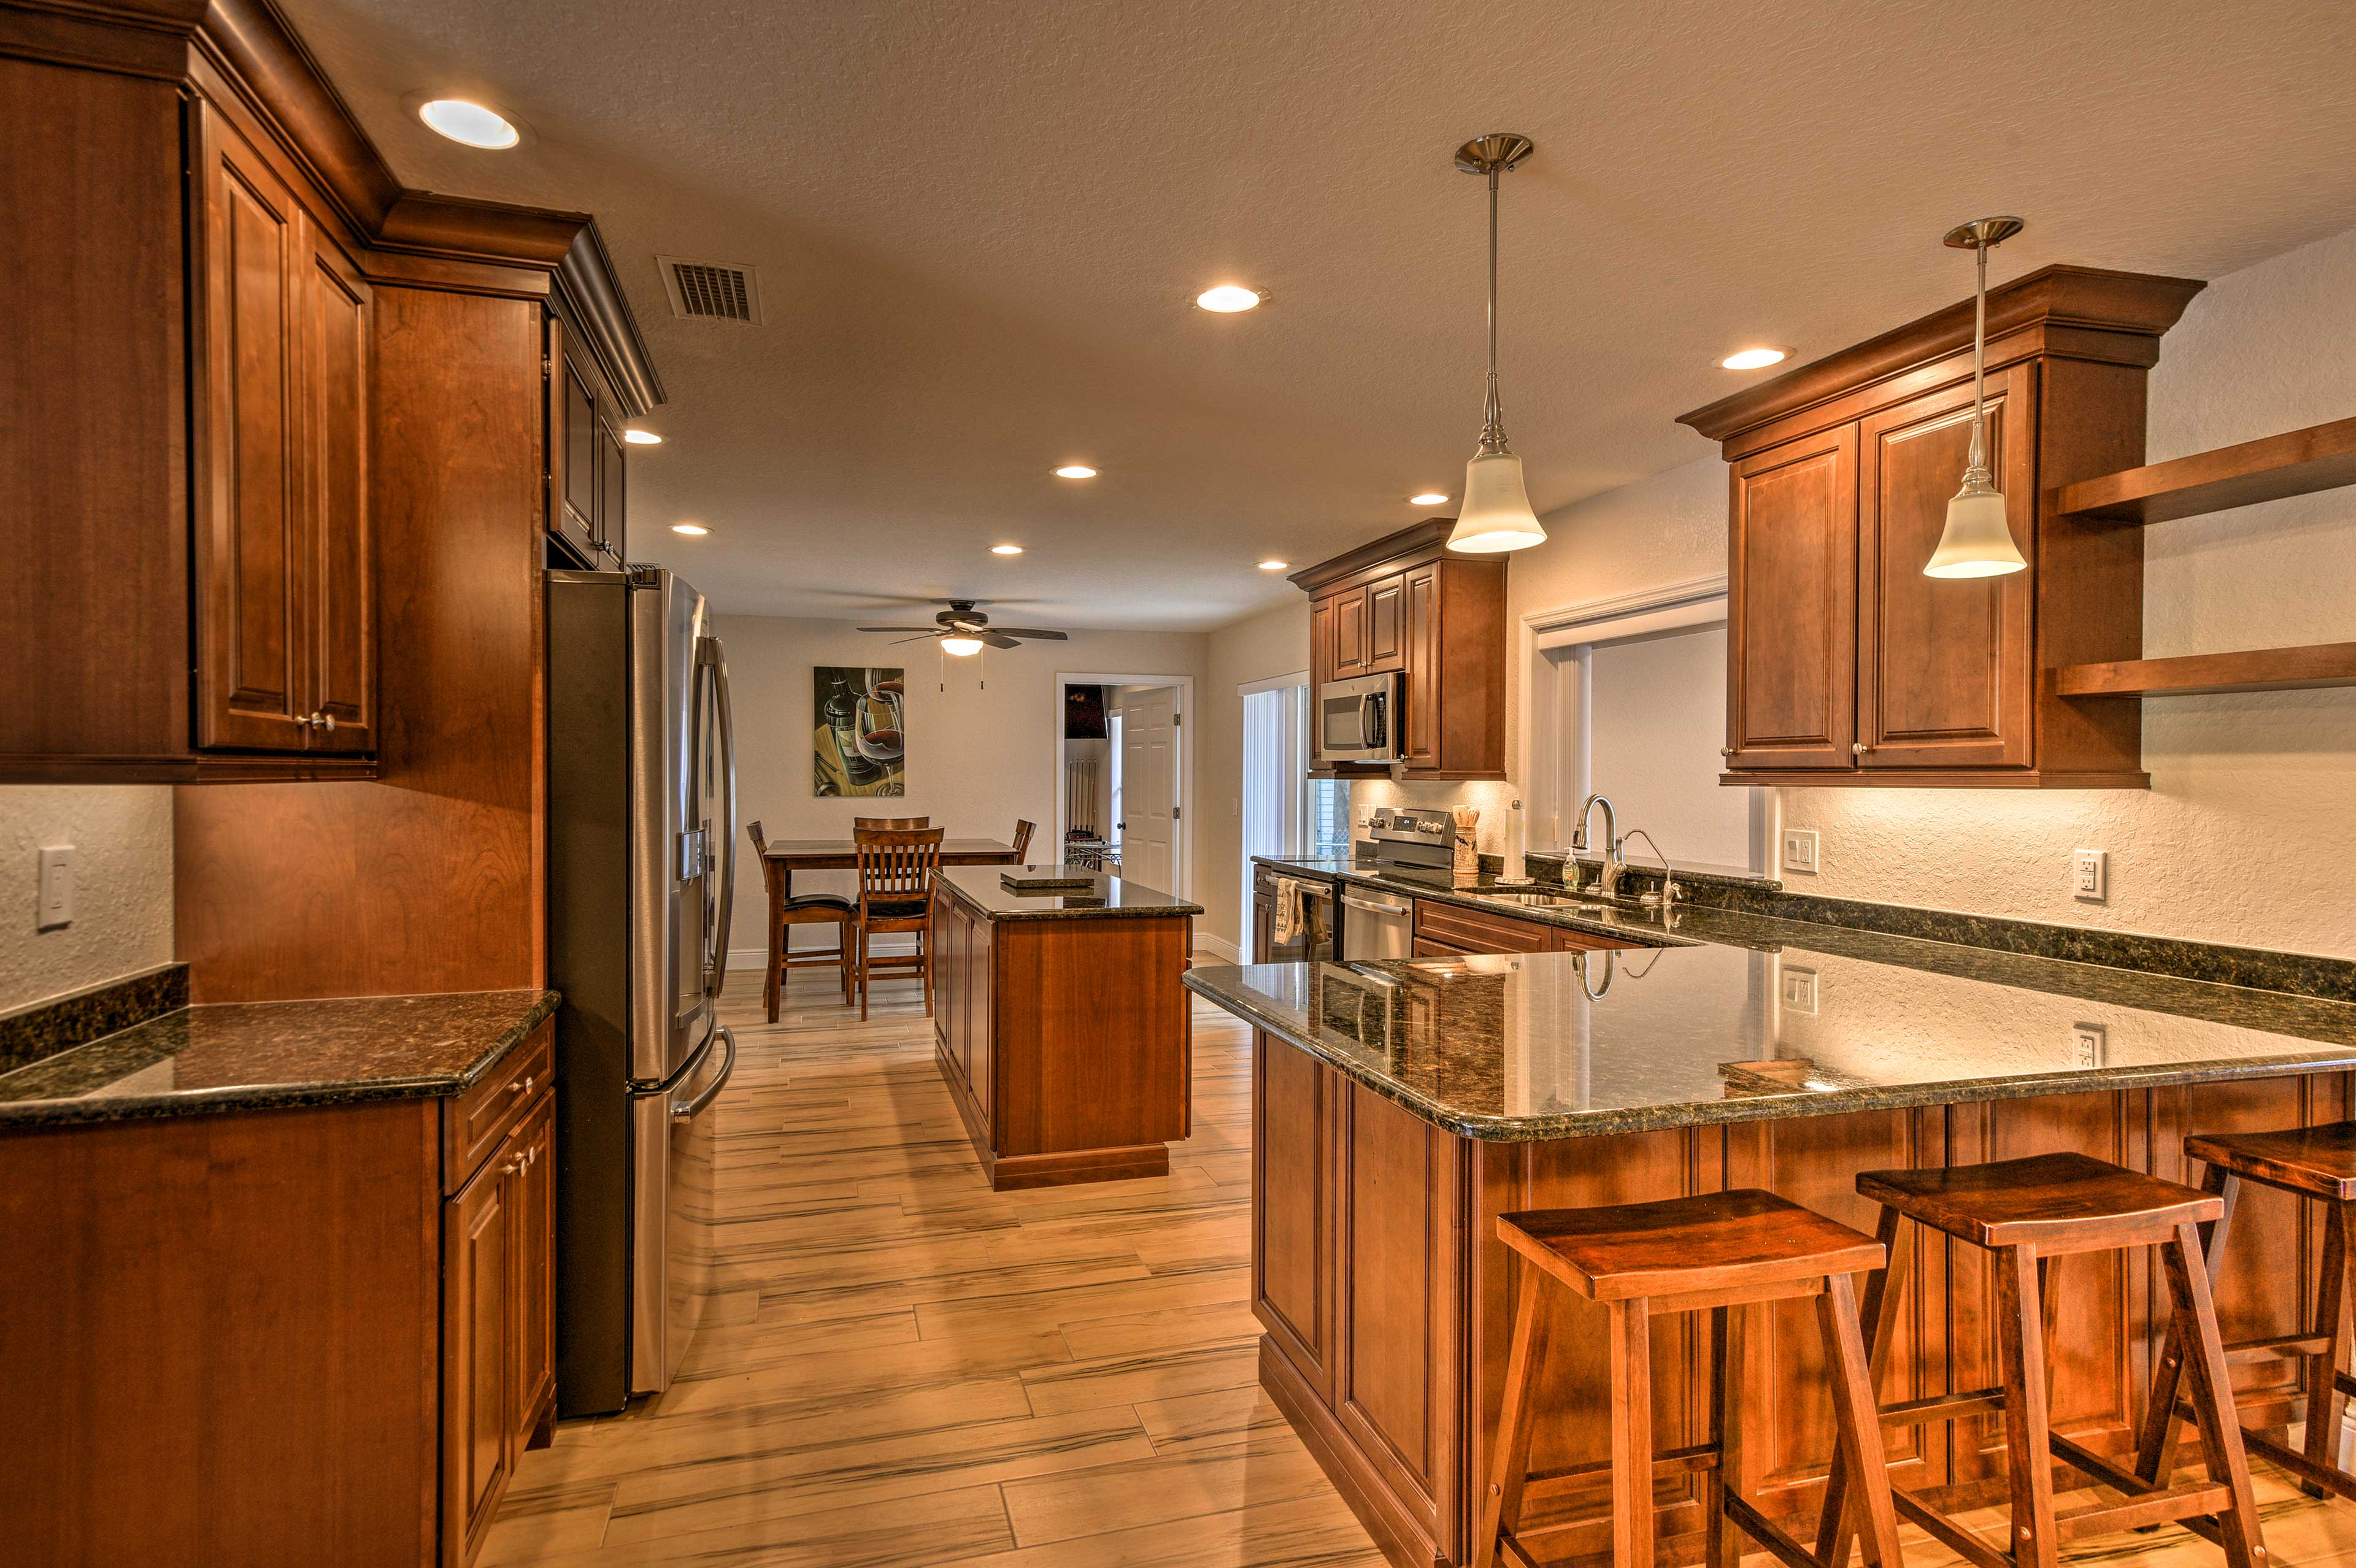 Fully equipped, this kitchen is every chef's dream.